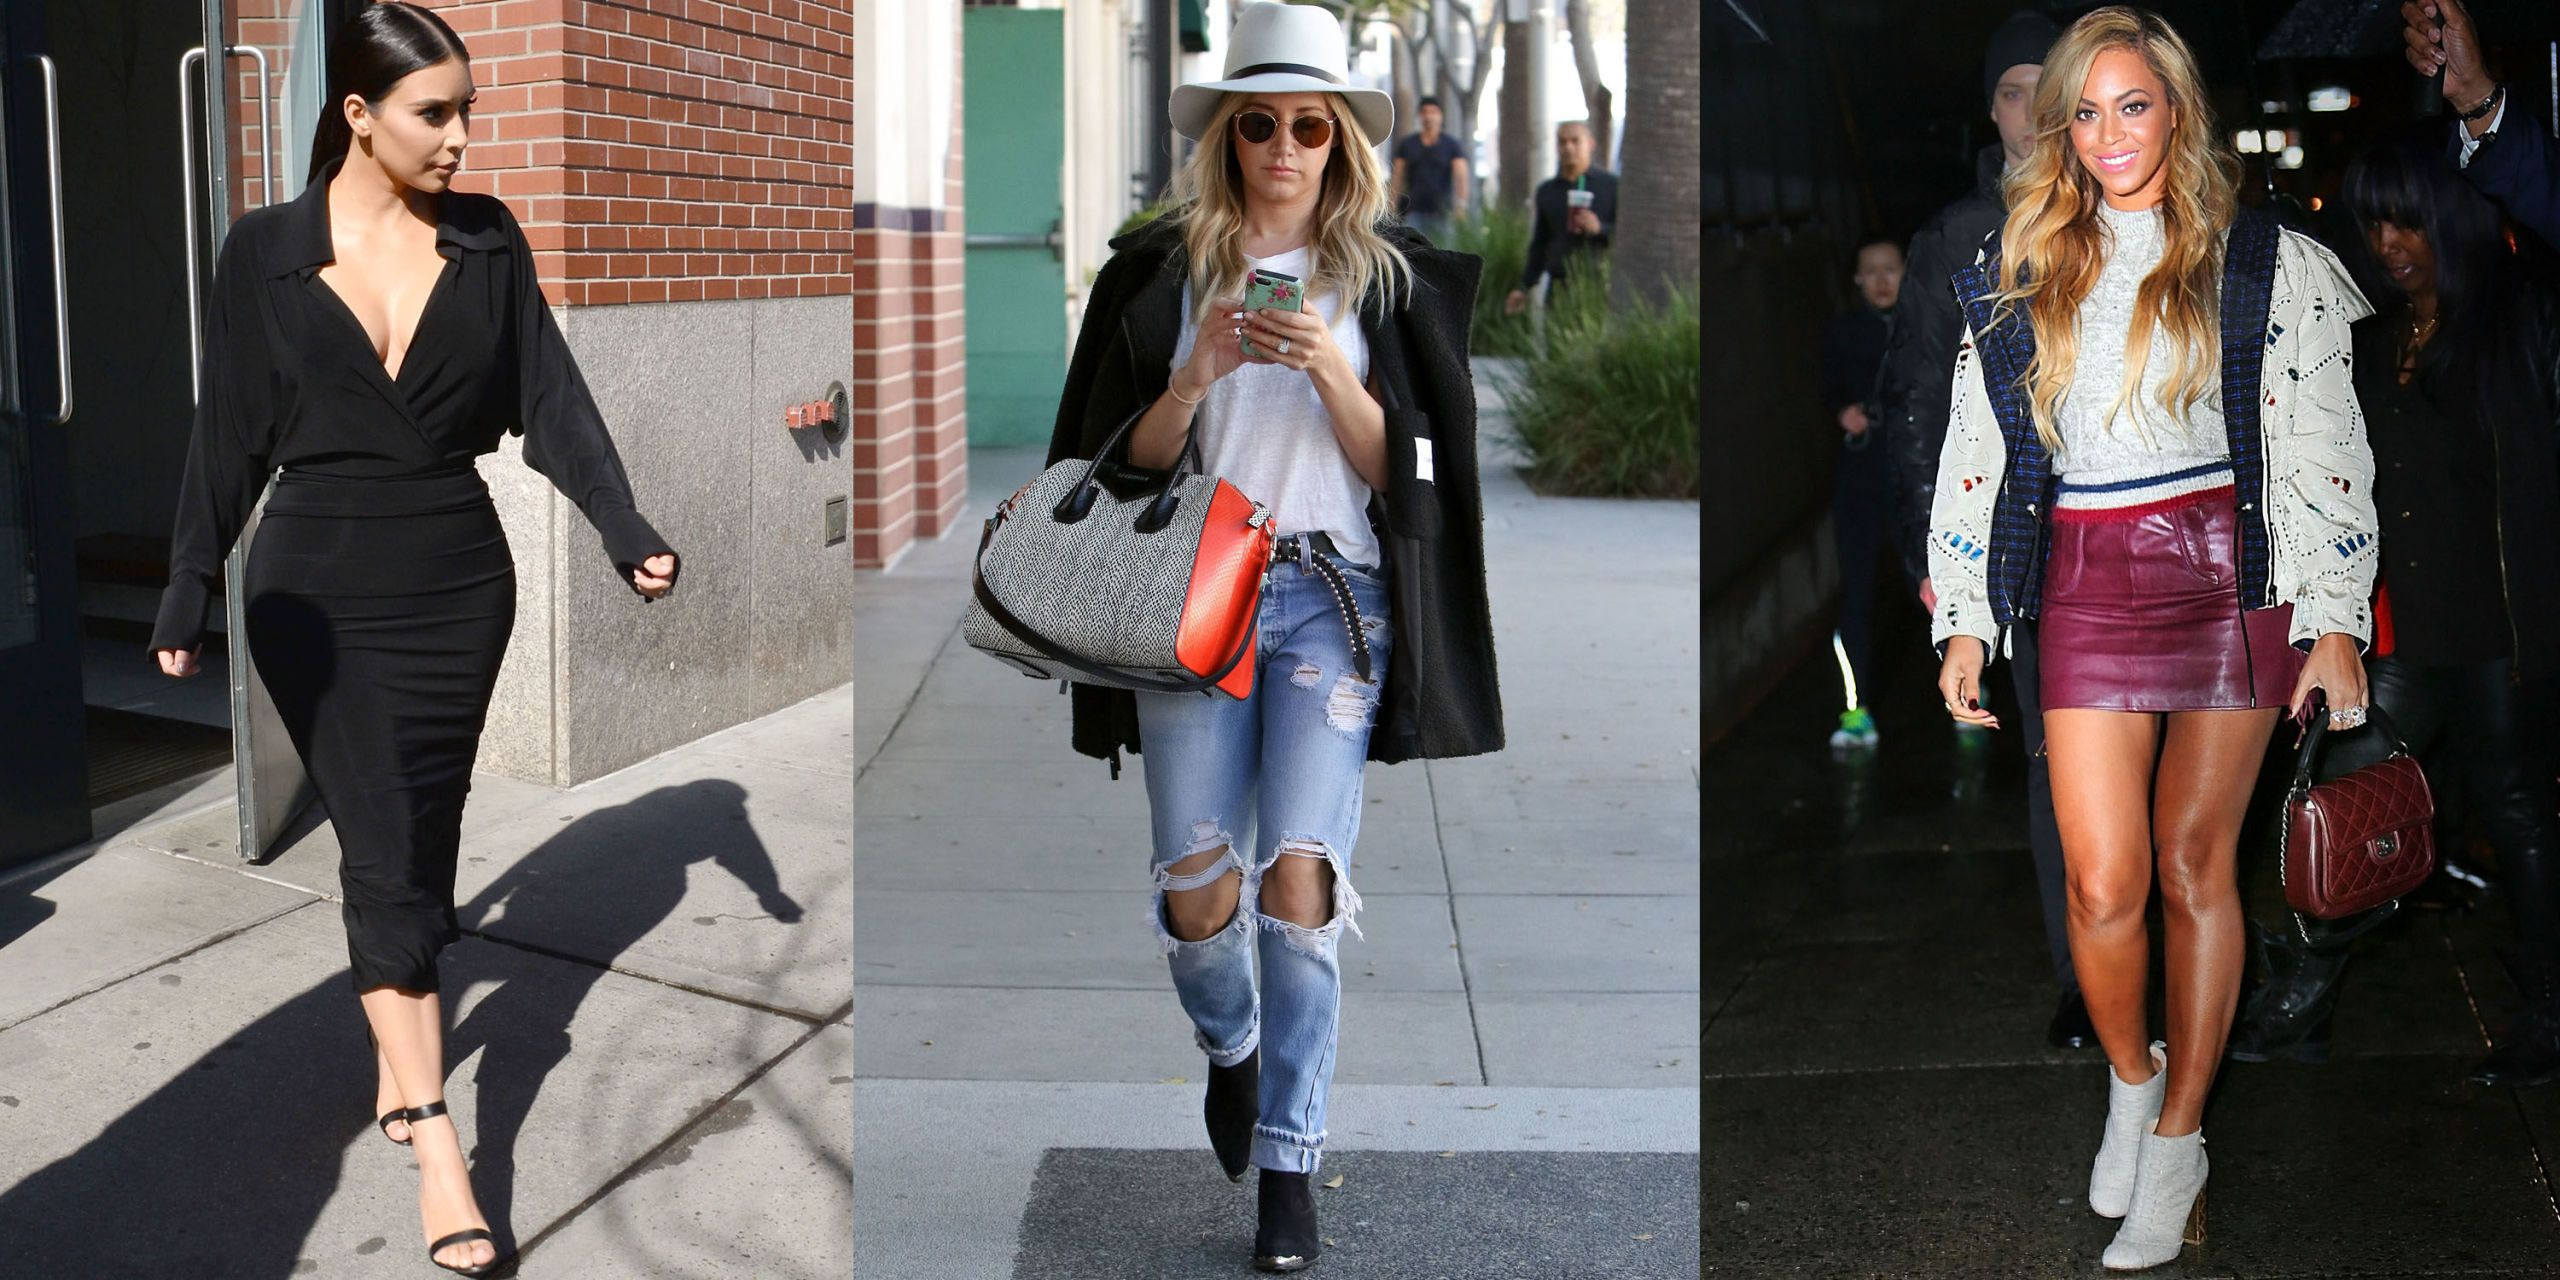 The Top U.S. Celebrity Style Influencers By City